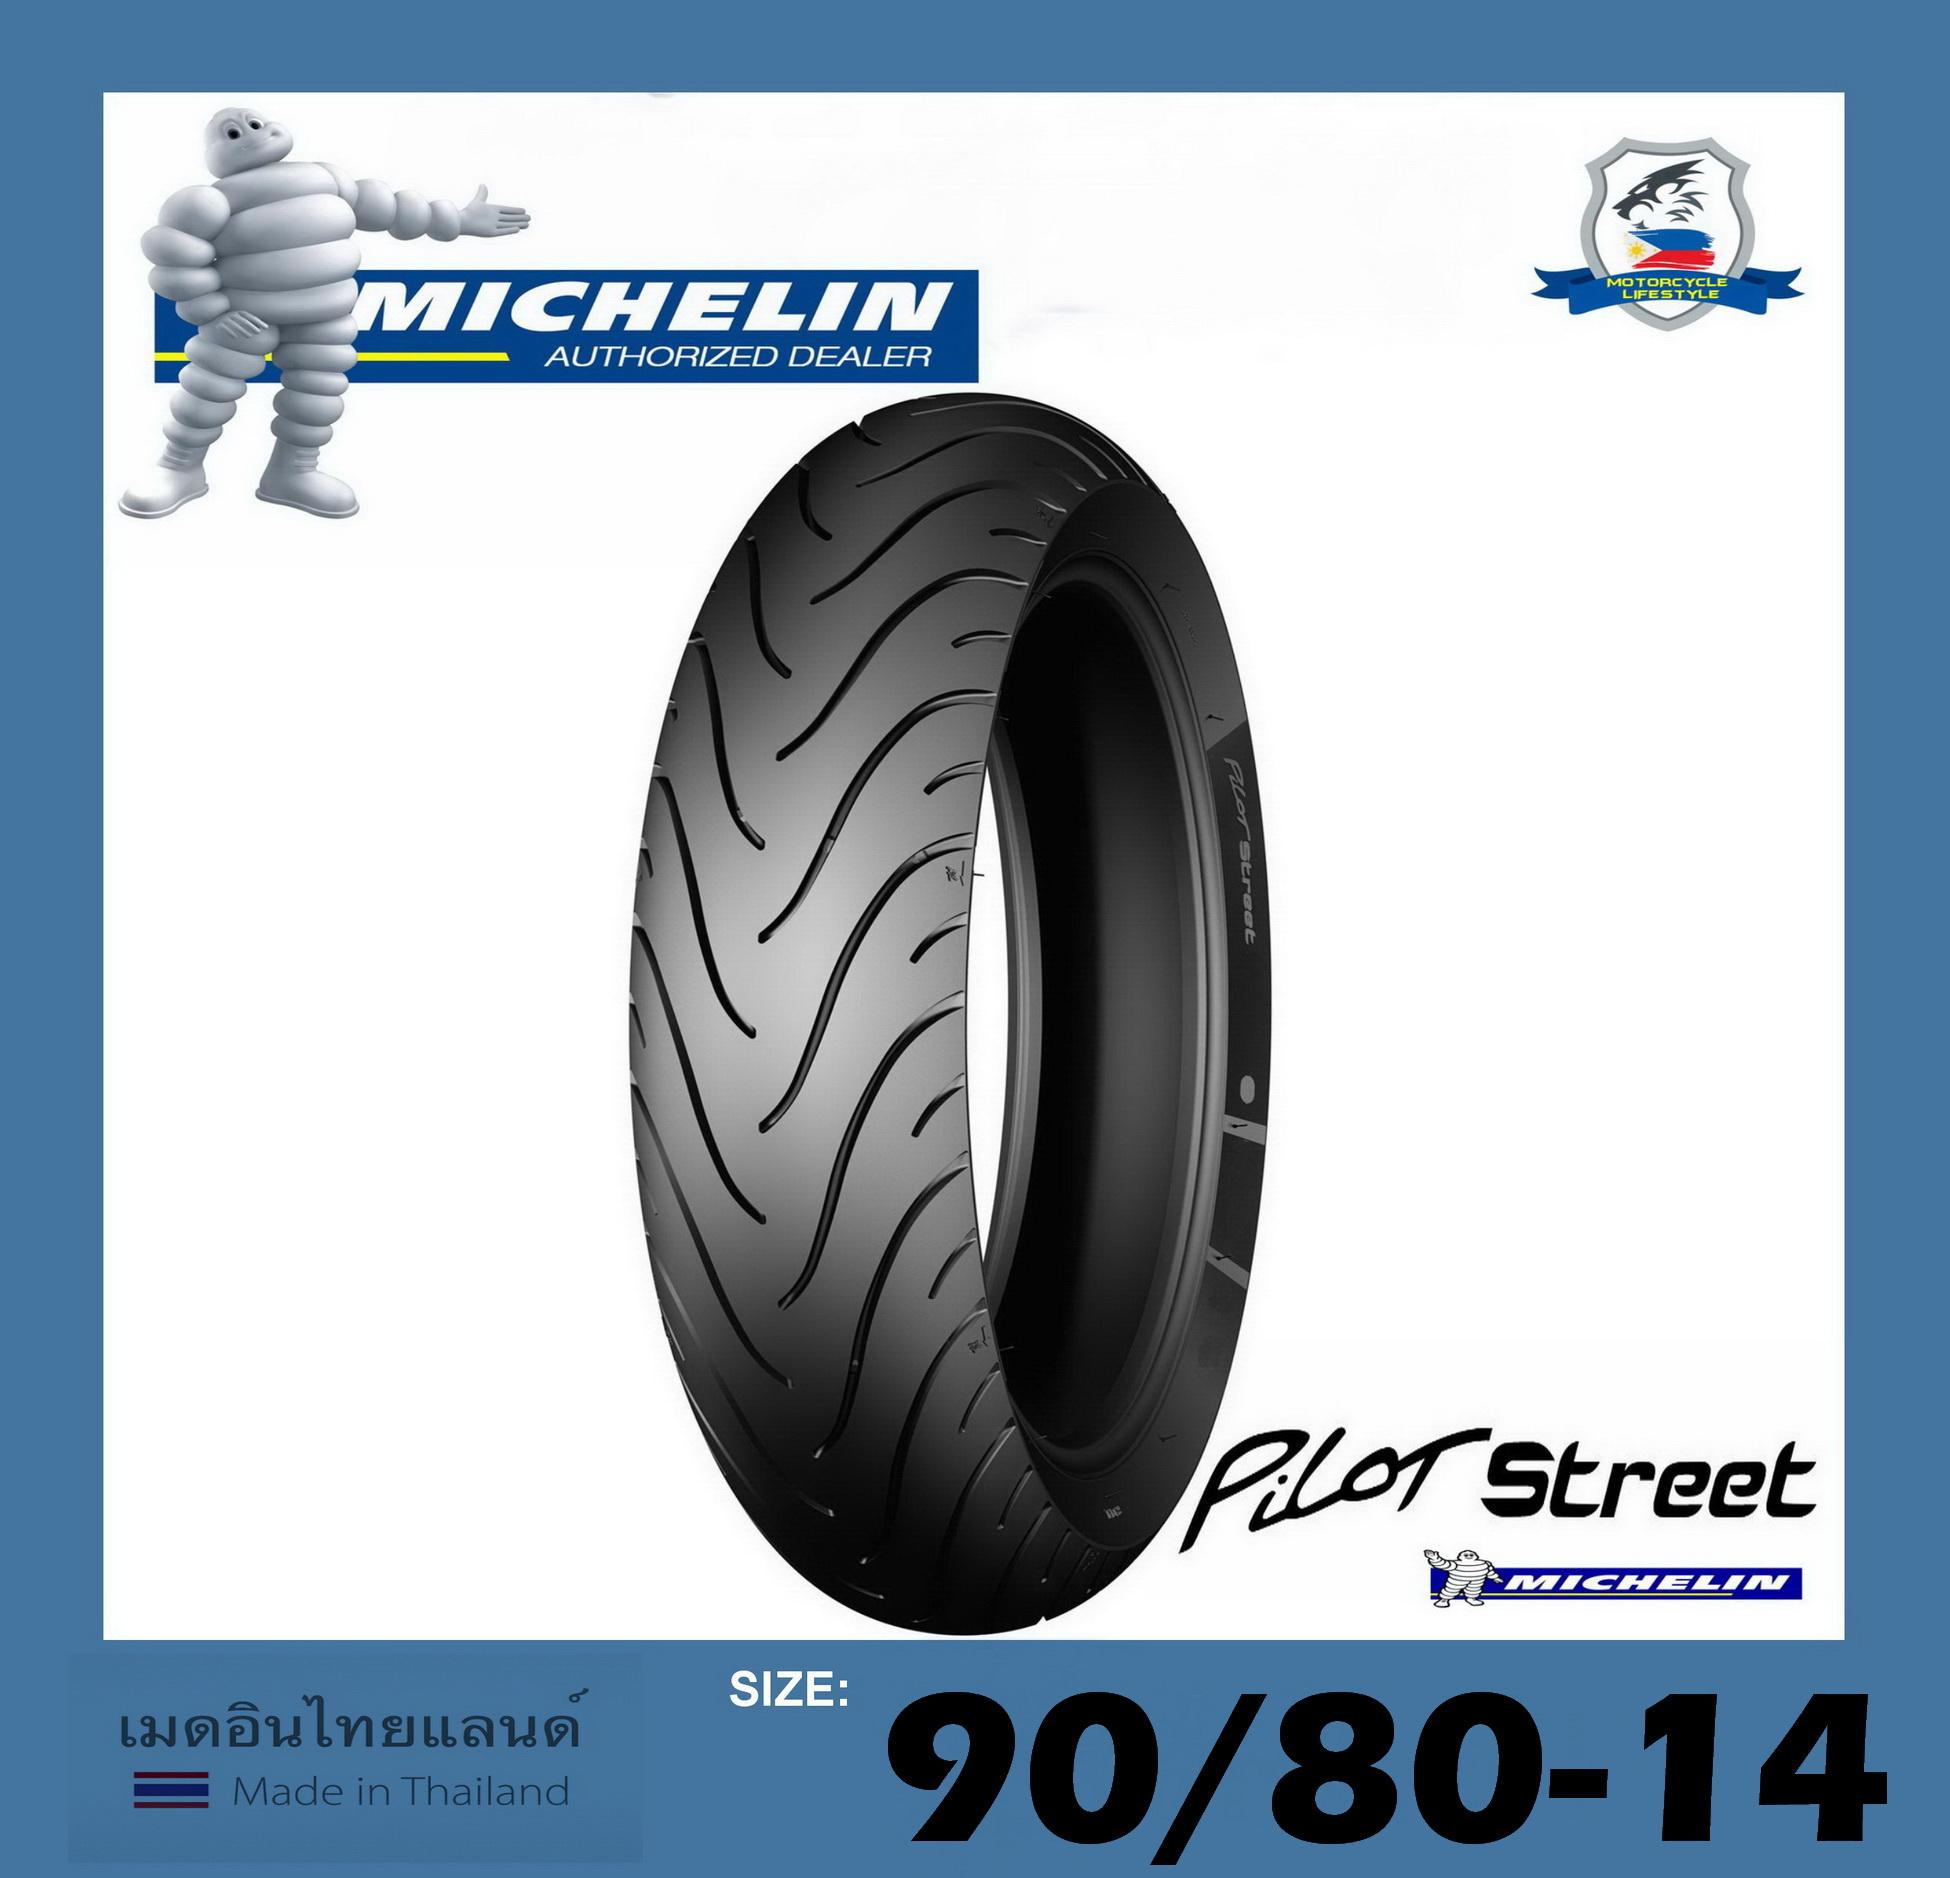 Motorcycle Tire Sizes >> Michelin Motorcycle Tire 80 90 R14 Pilot Street Tl Tt Lazada Ph